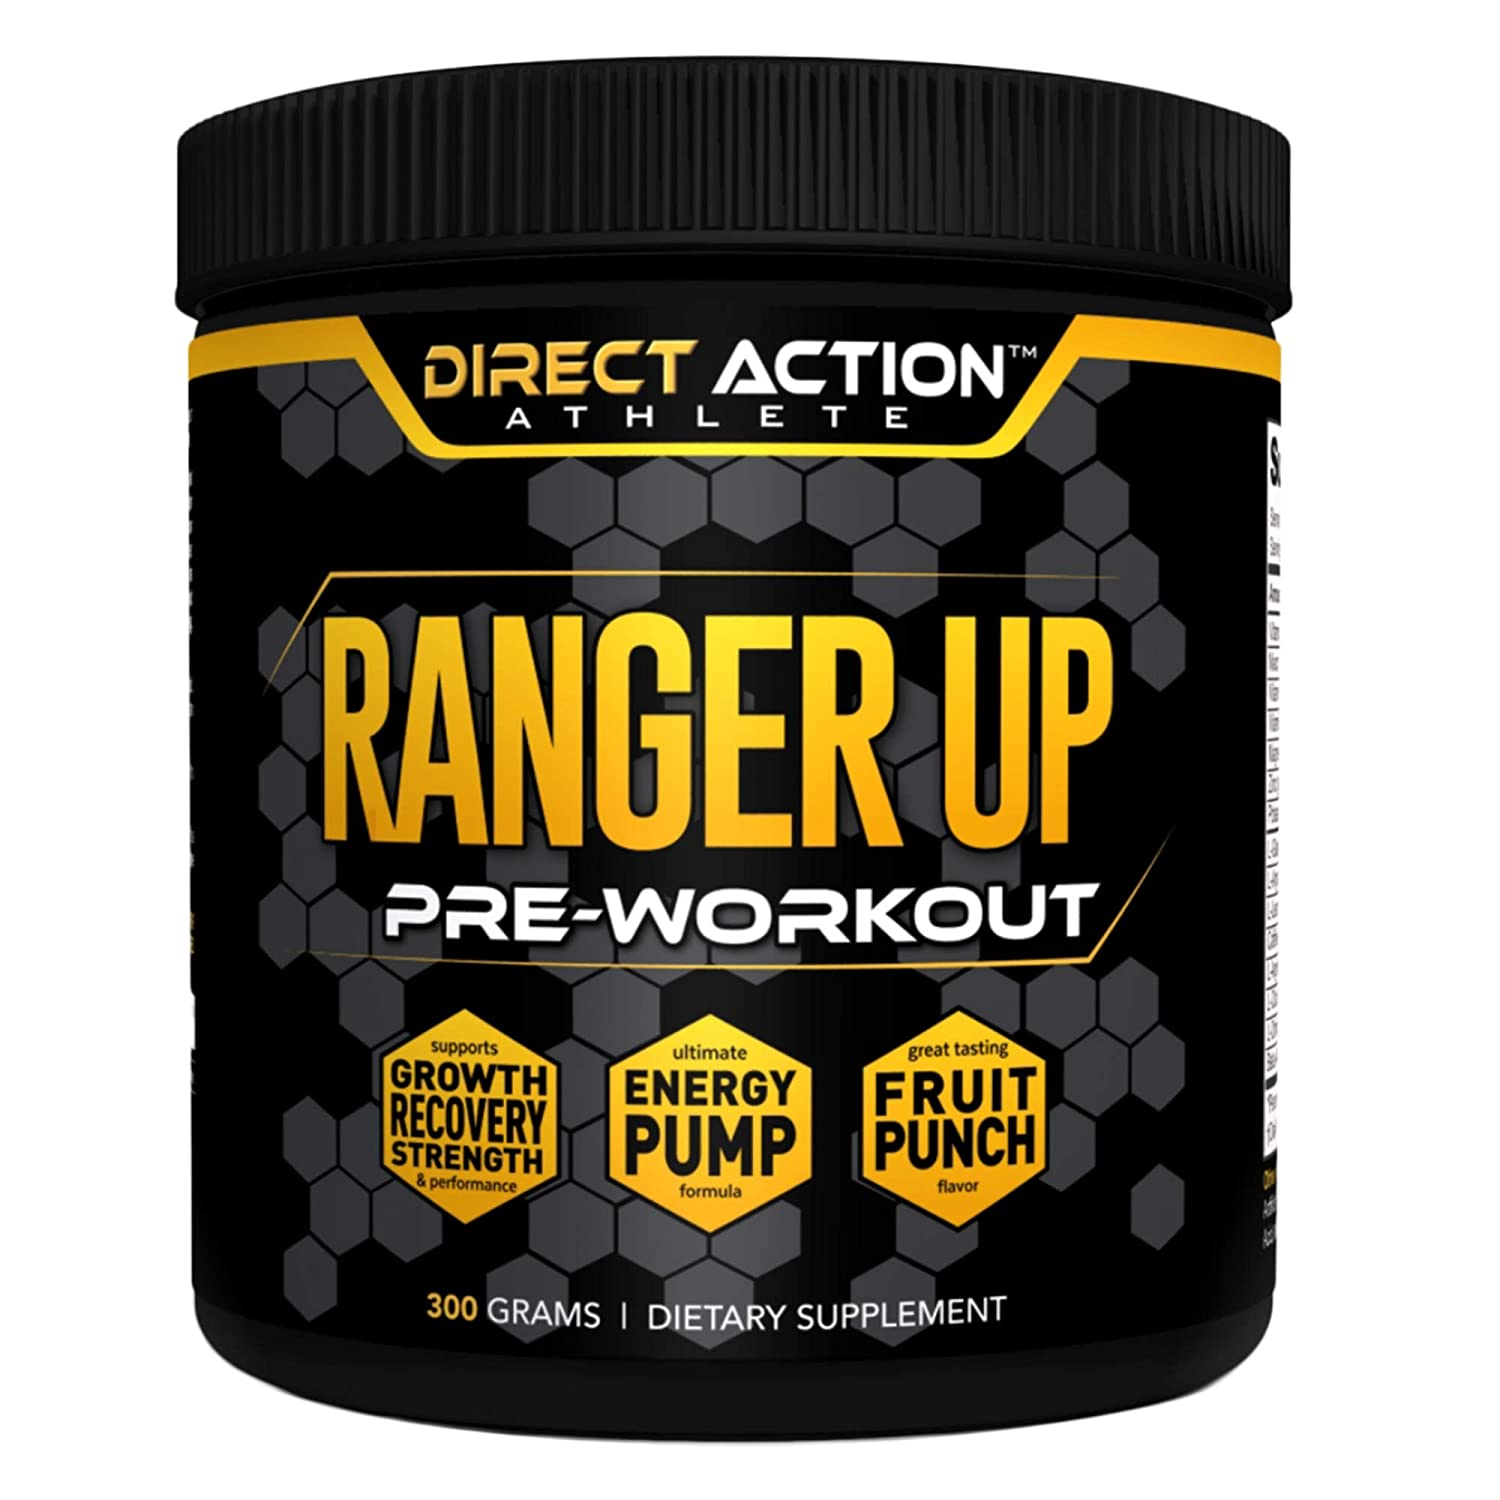 Direct Action Athlete Ranger Up Pre-Workout Powder Fruit Punch Advanced Non-GMO Formula for Explosive Strength Stamina Muscle Growth Energy Support